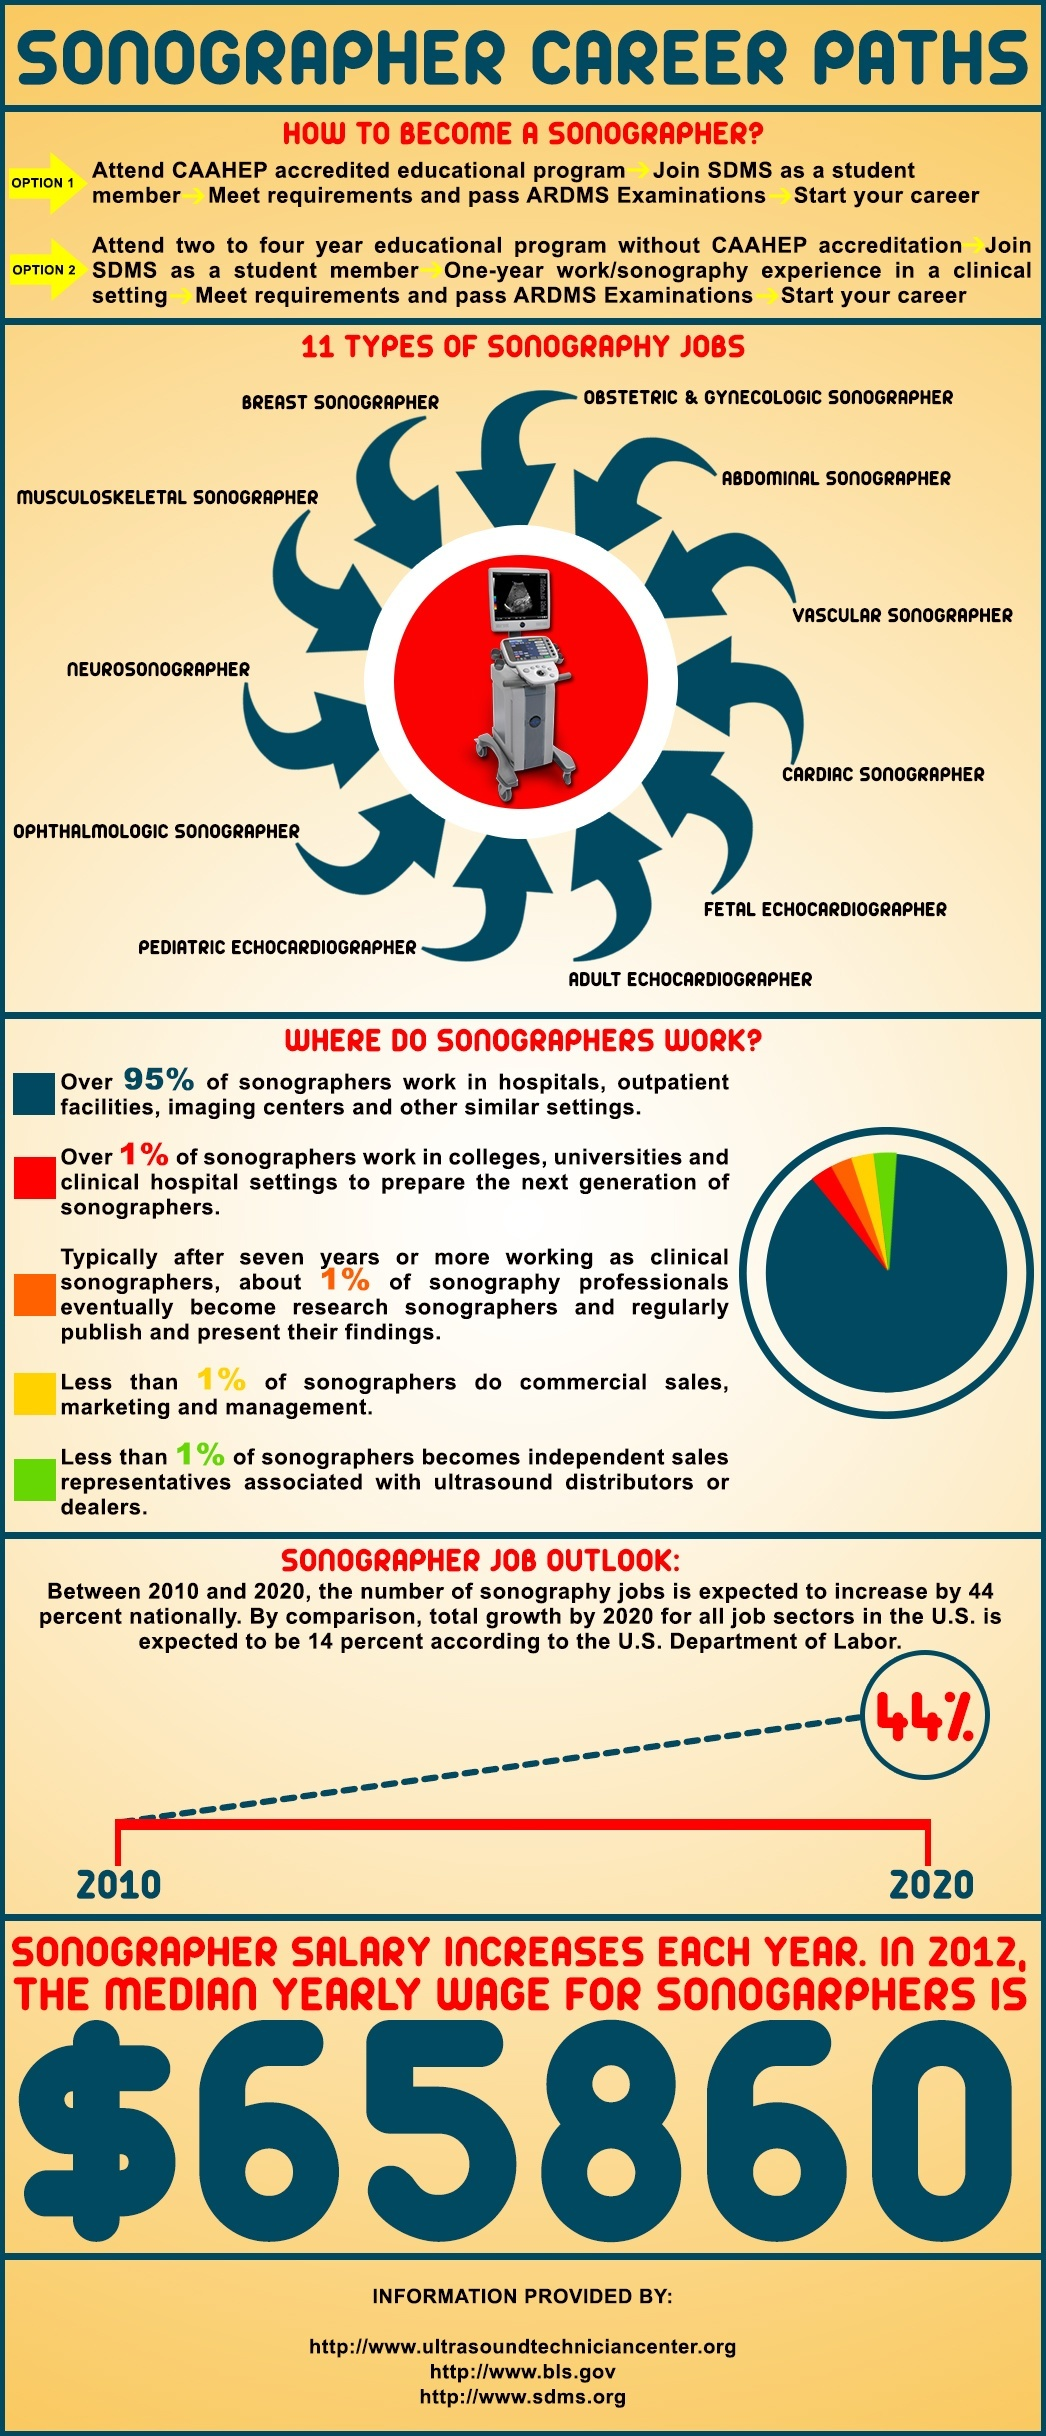 Sonographer Career Paths (Infographic) • Ultrasound Technician